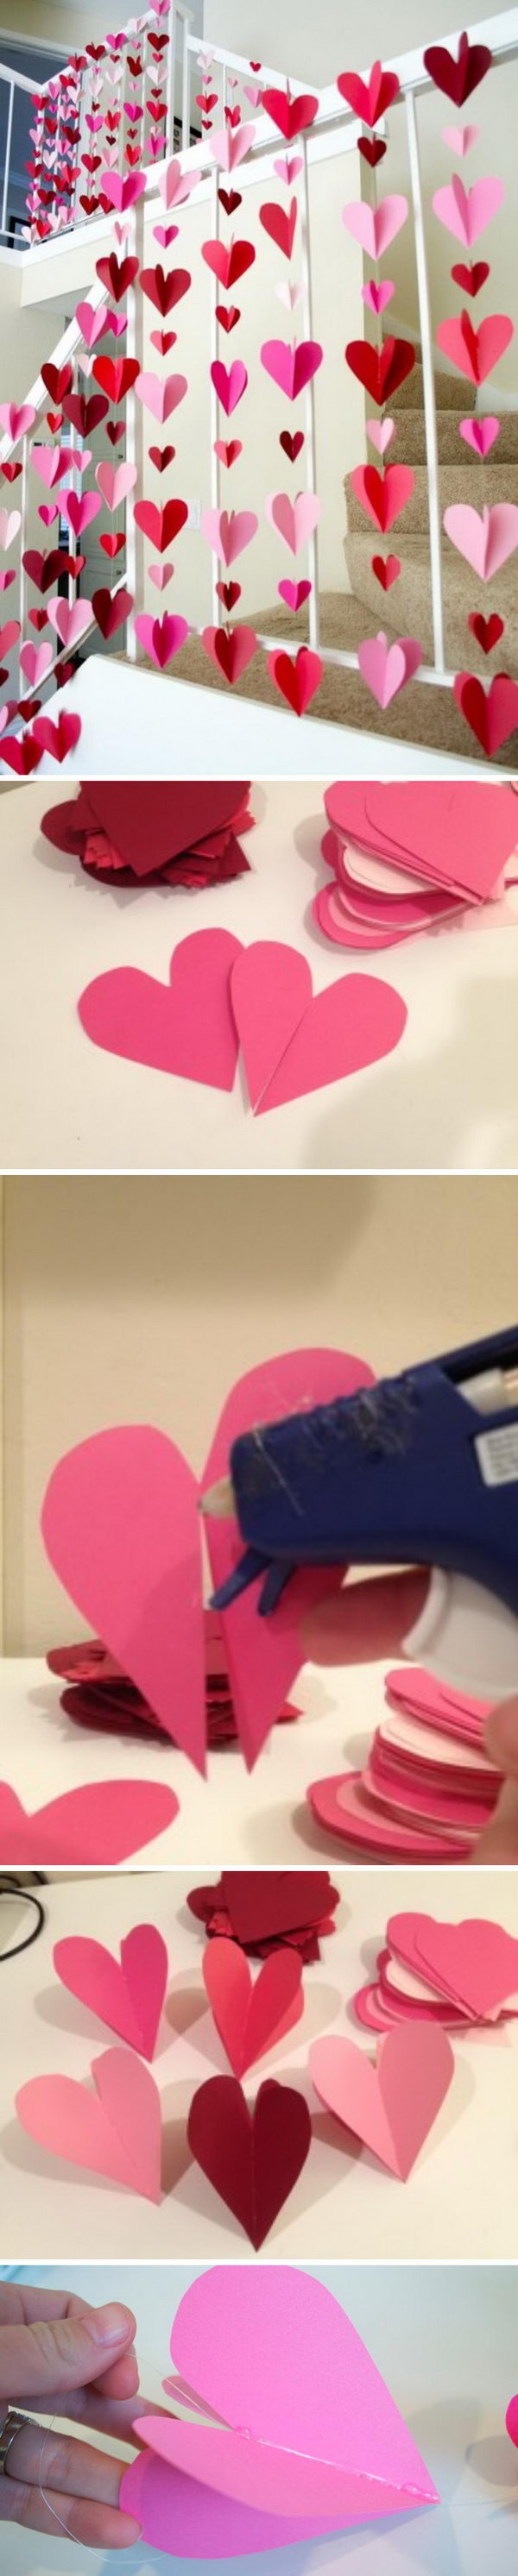 Paper Heart Backdrop.